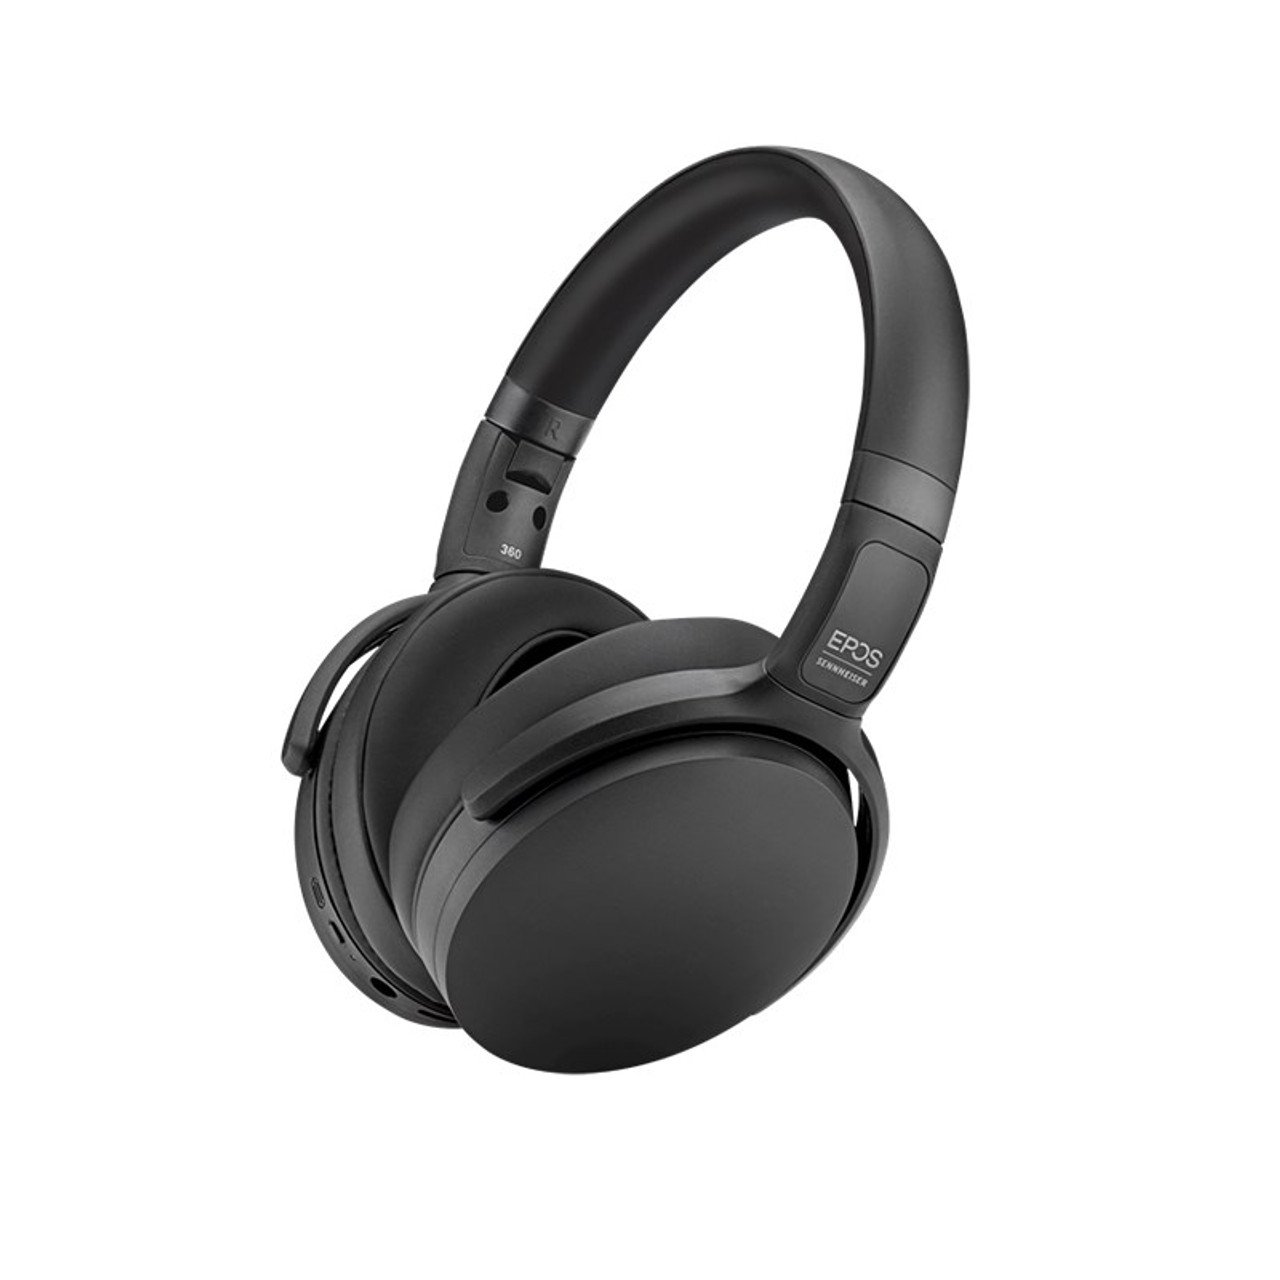 Image for EPOS Sennheiser ADAPT 360 ANC Bluetooth Headset With Mic CX Computer Superstore